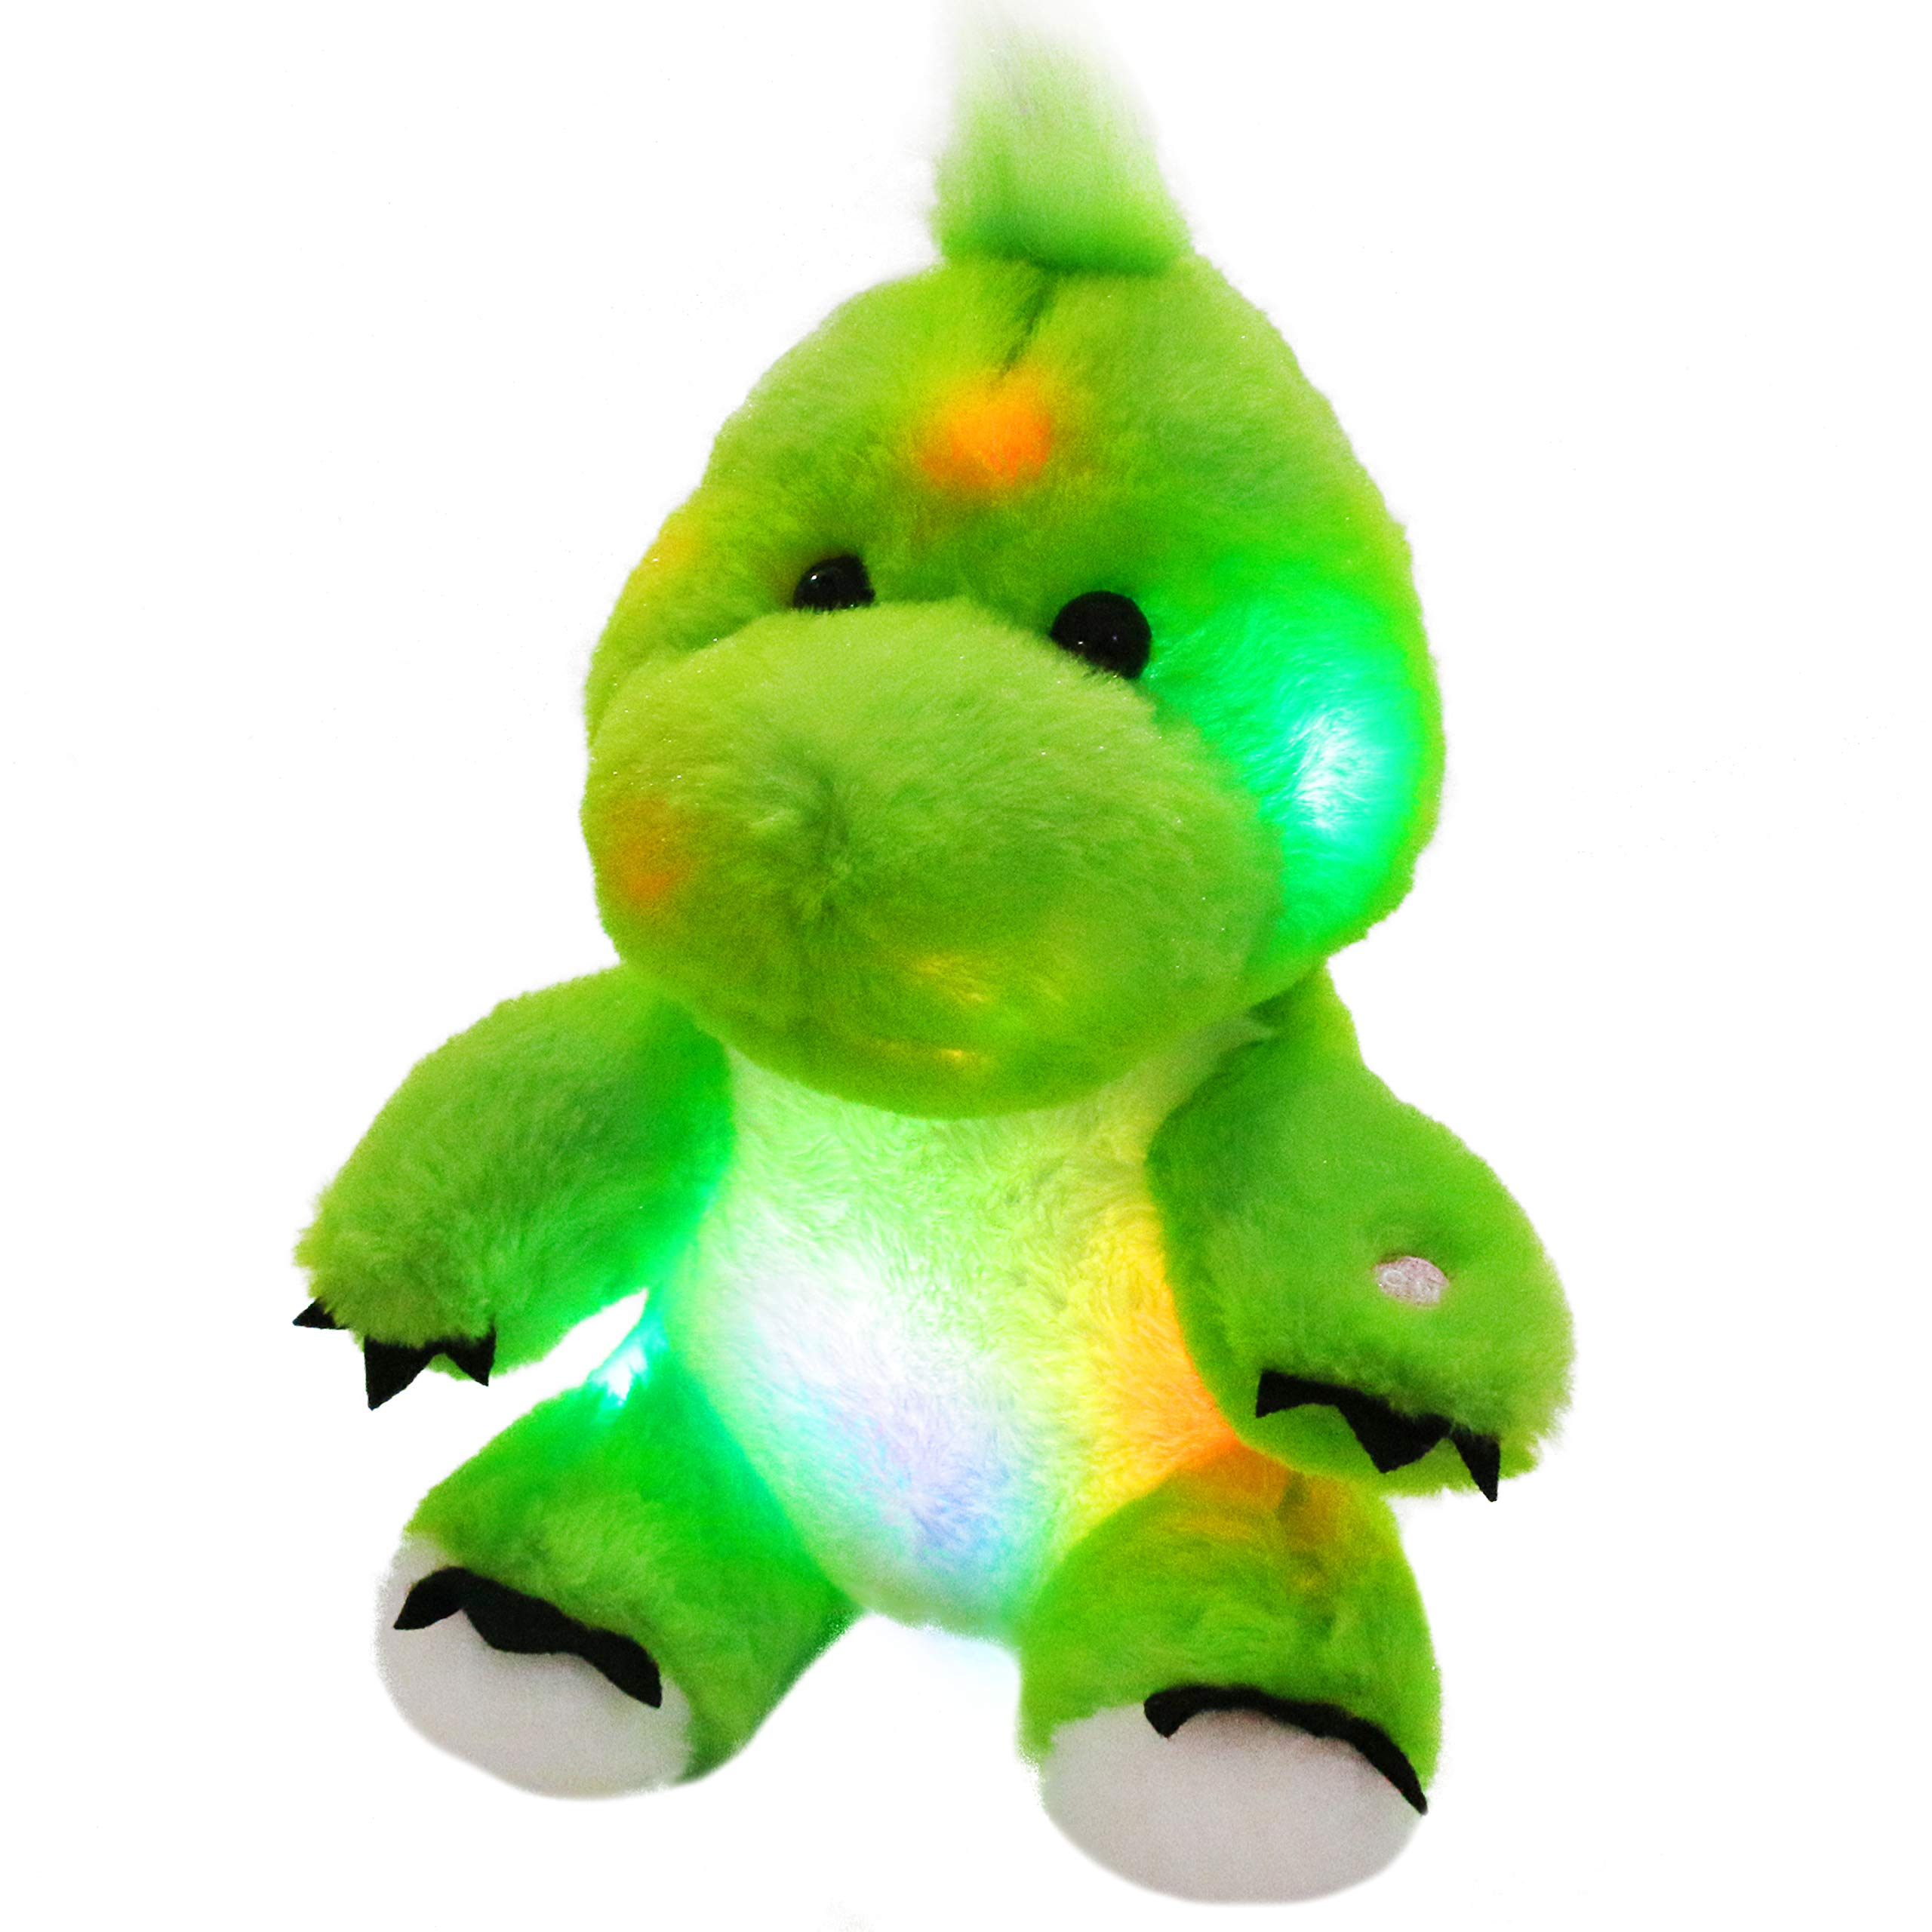 Bstaofy LED Dinosaur Stuffed Animal Glow Green T-Rex Light Up Plush Toy Soft Adorable Gift for Kids Toddlers on Birthday Christmas, 11 Inches